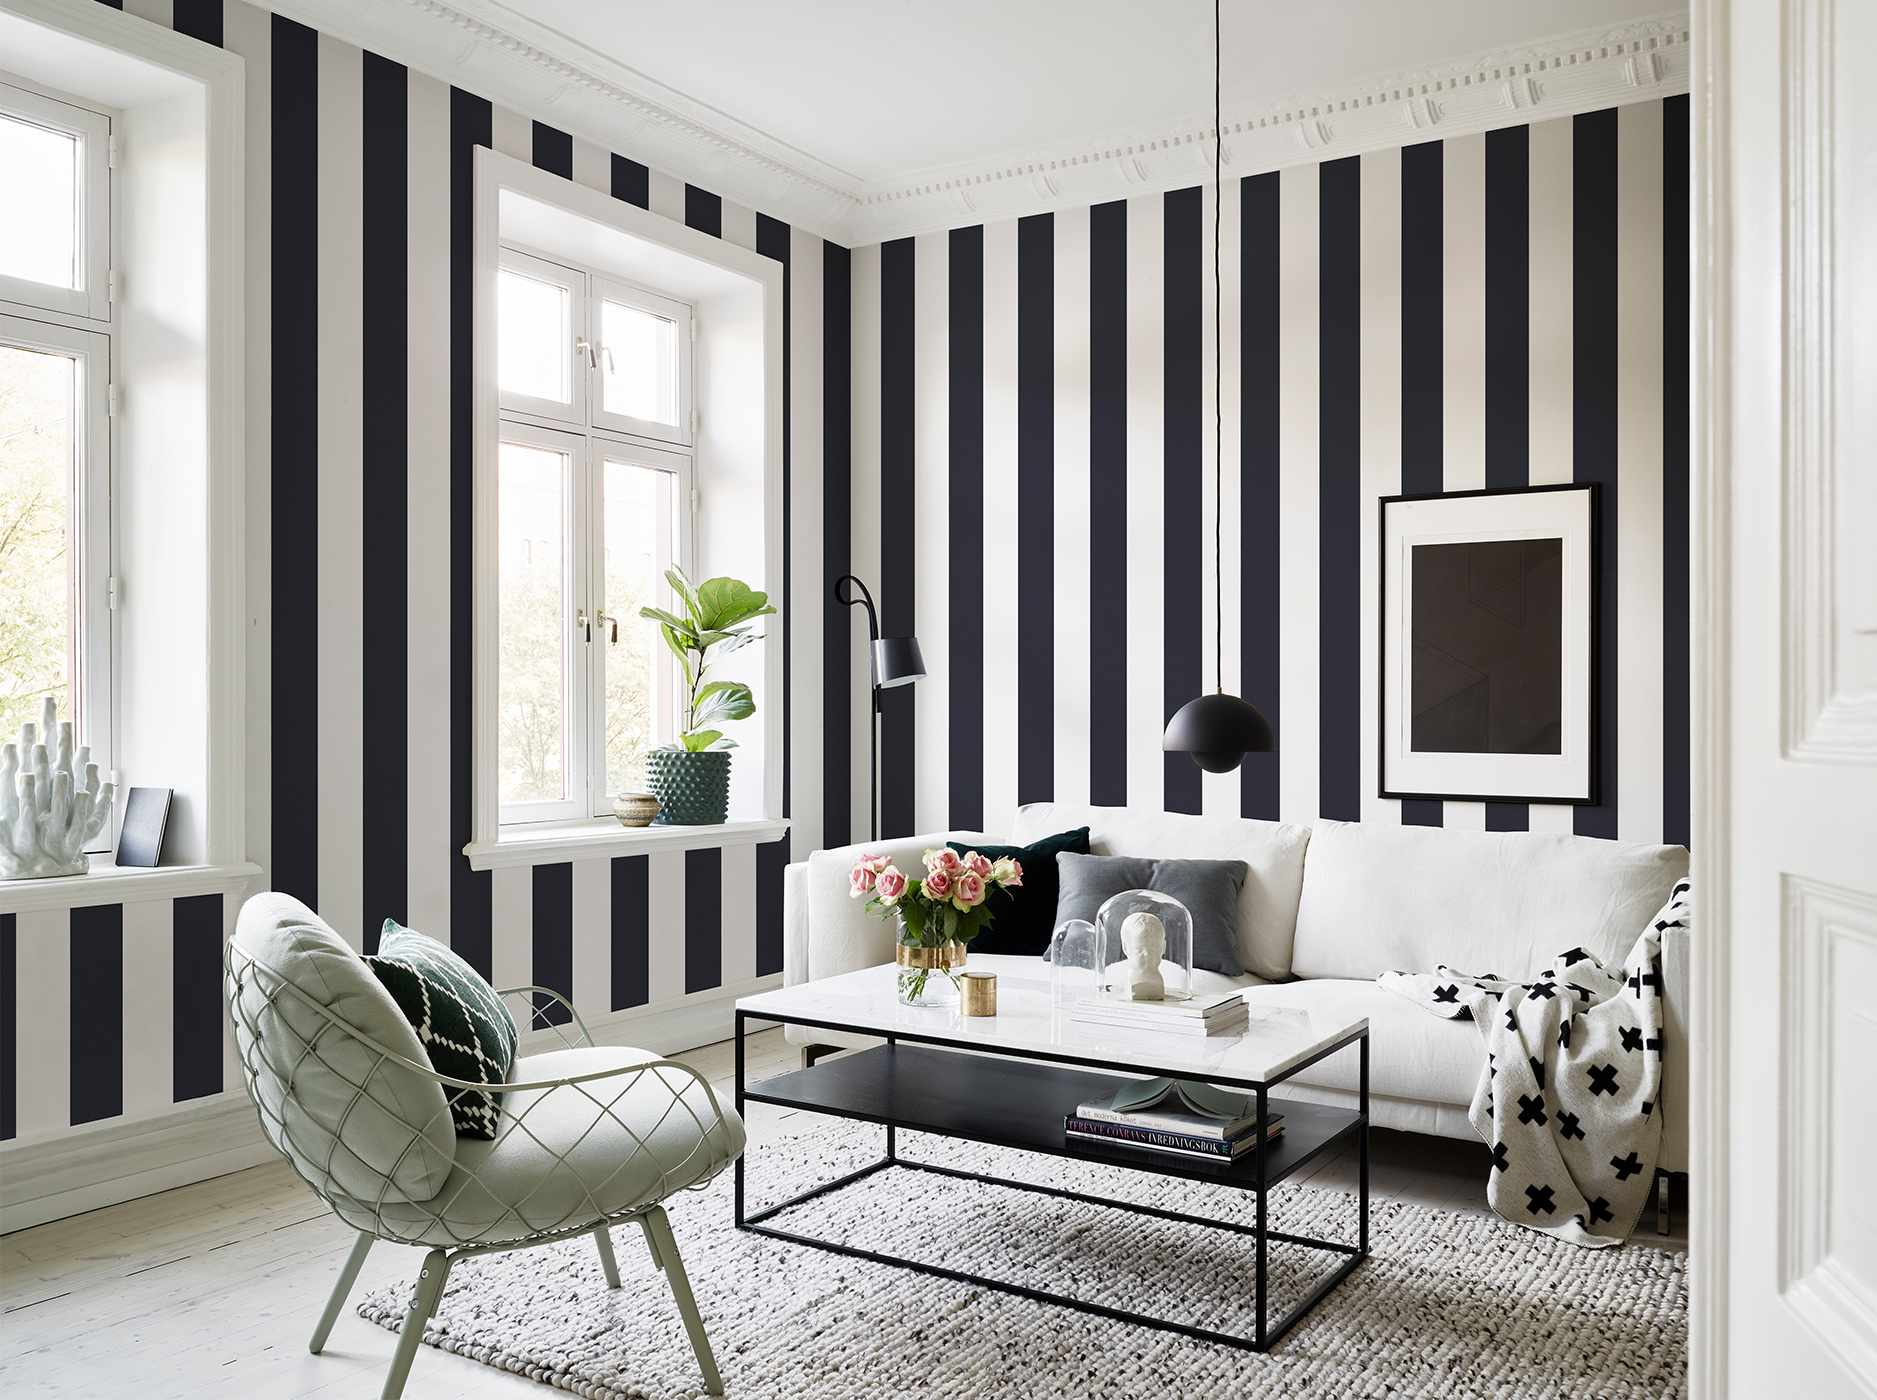 Striped wallpaper design ideas